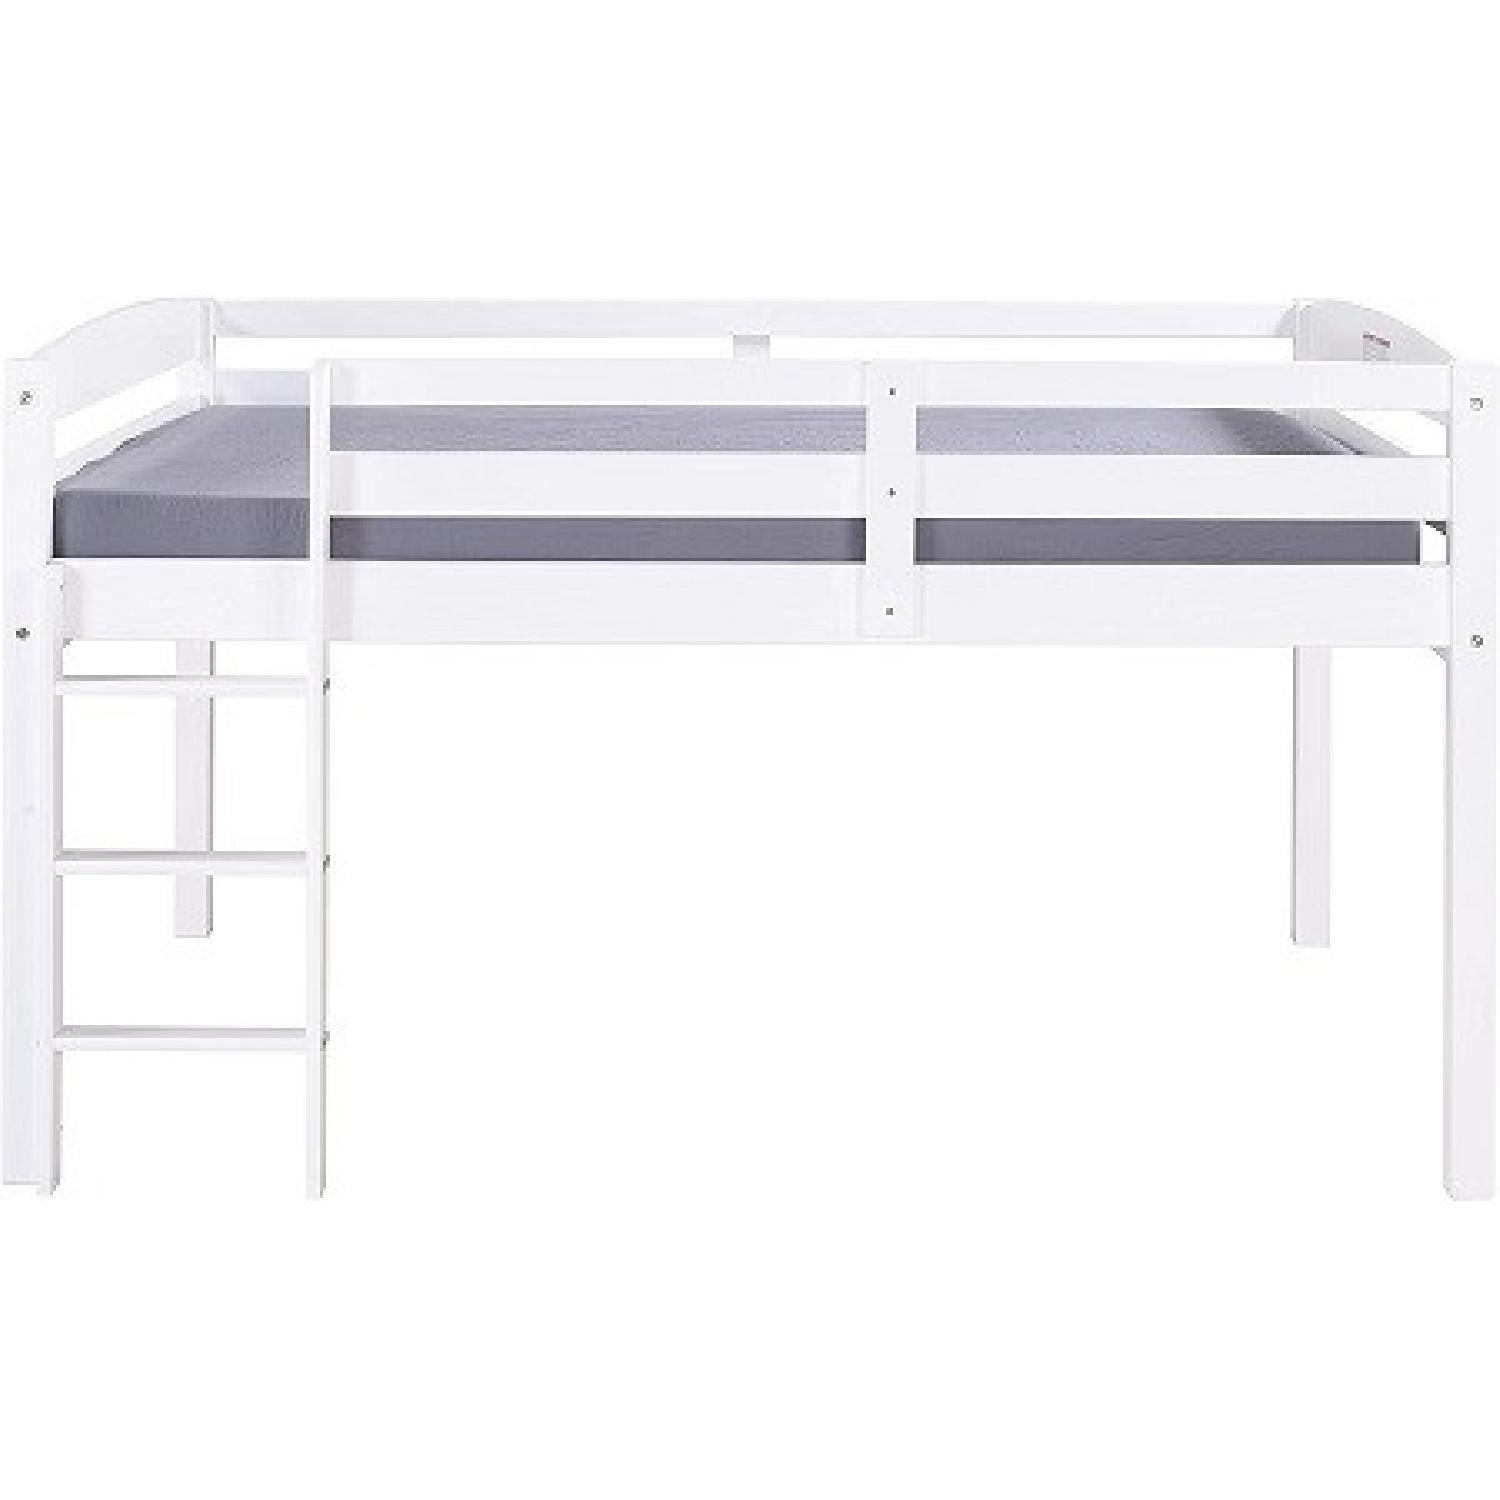 Concord Junior Loft Bed - image-8